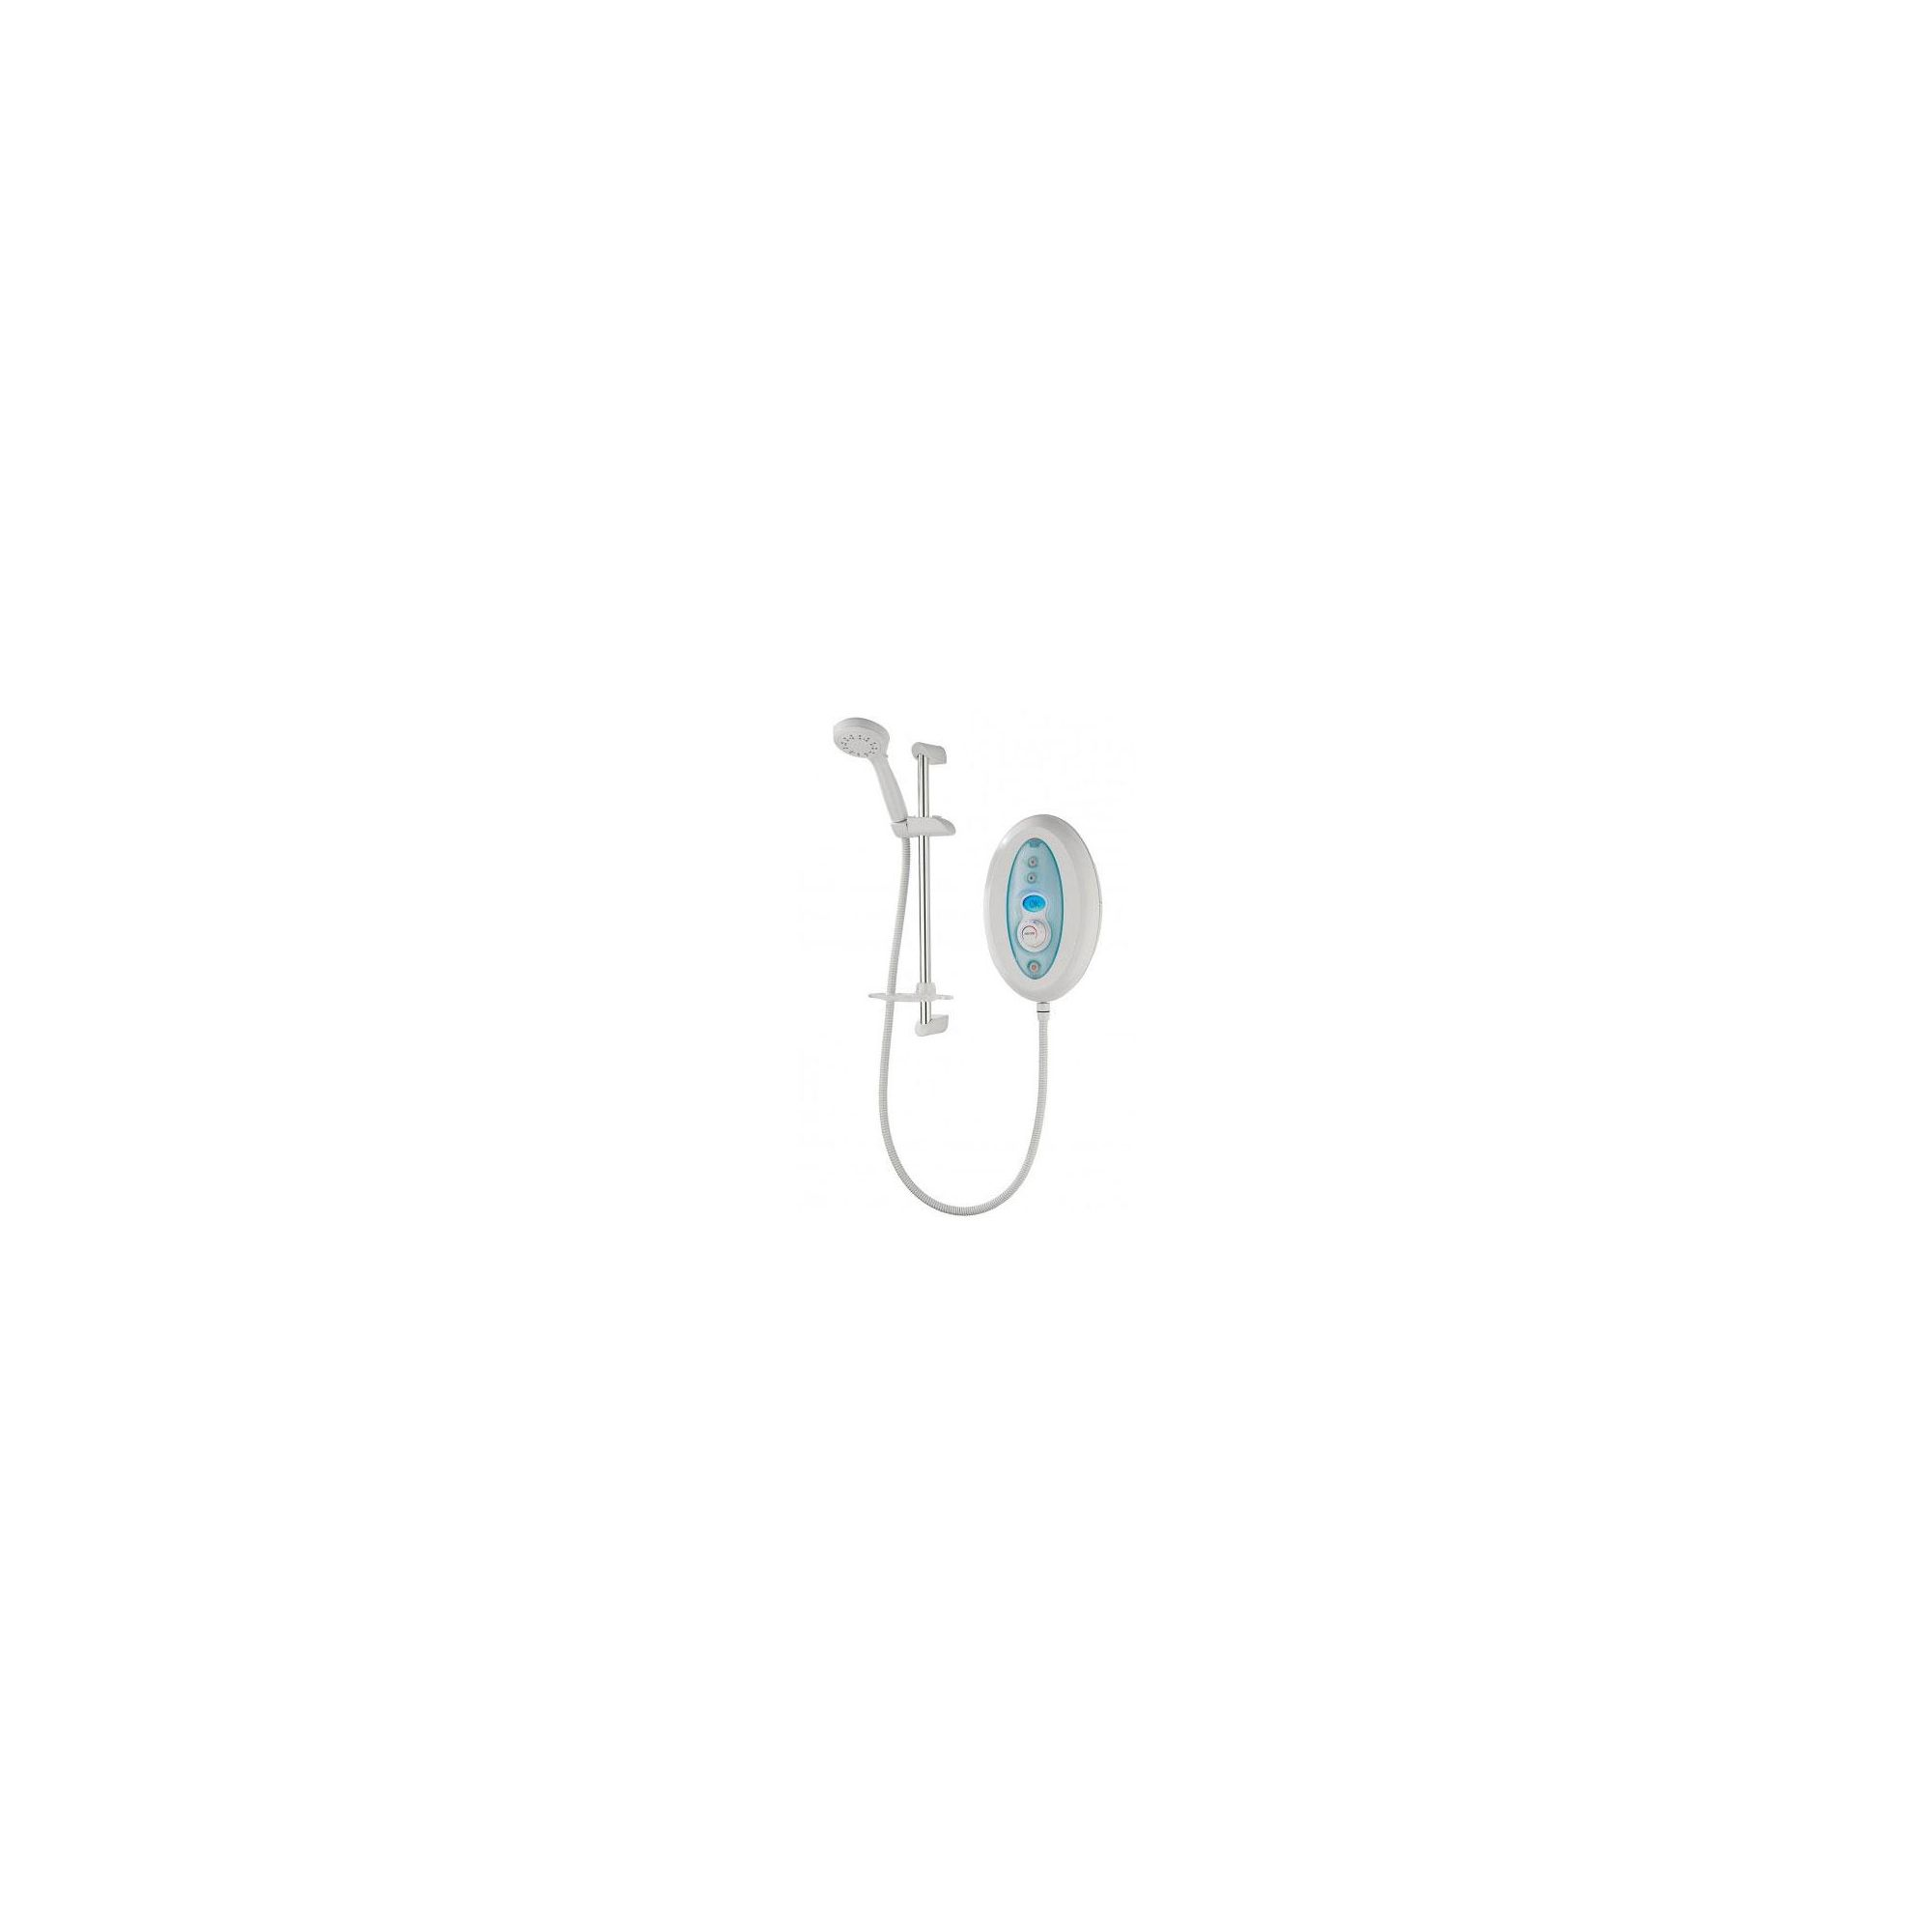 Triton Topaz T100si Thermostatic Electric Shower White 9.5 kW at Tesco Direct